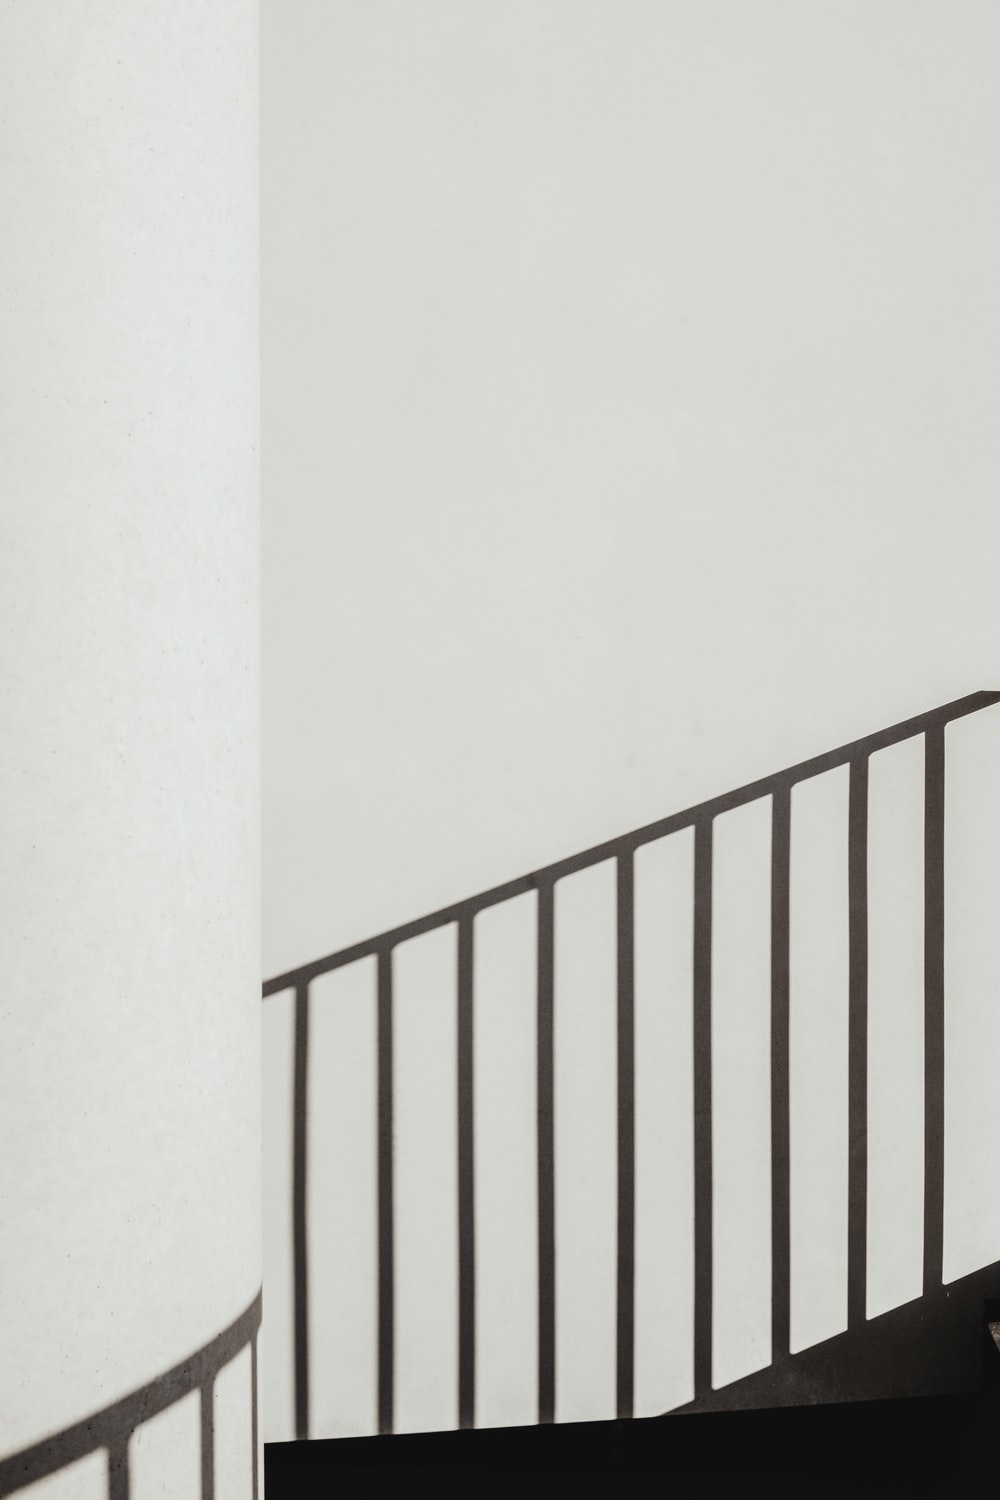 shadow of stair rails on white painted wall